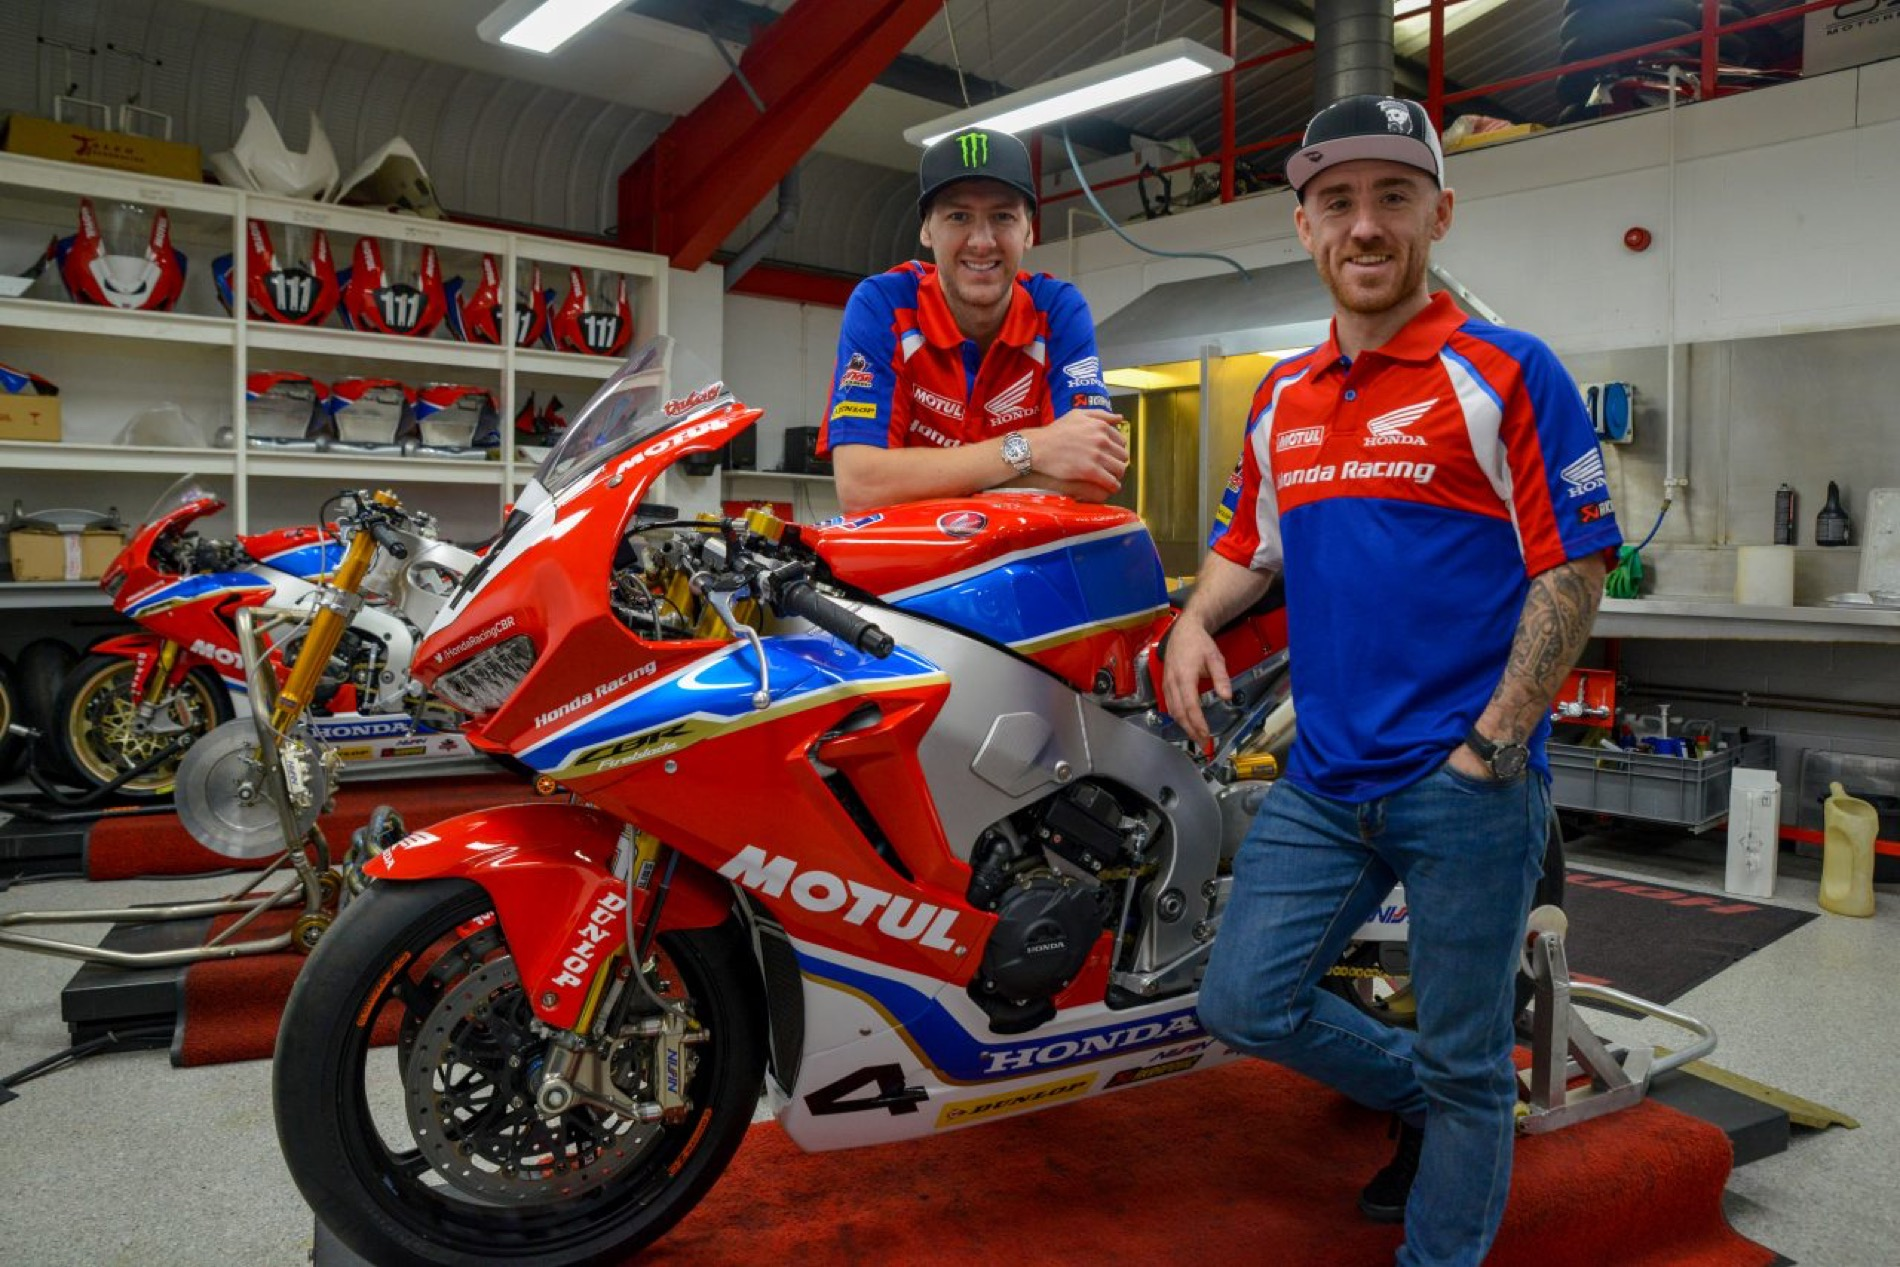 Equipo Honda Racing para Road Races